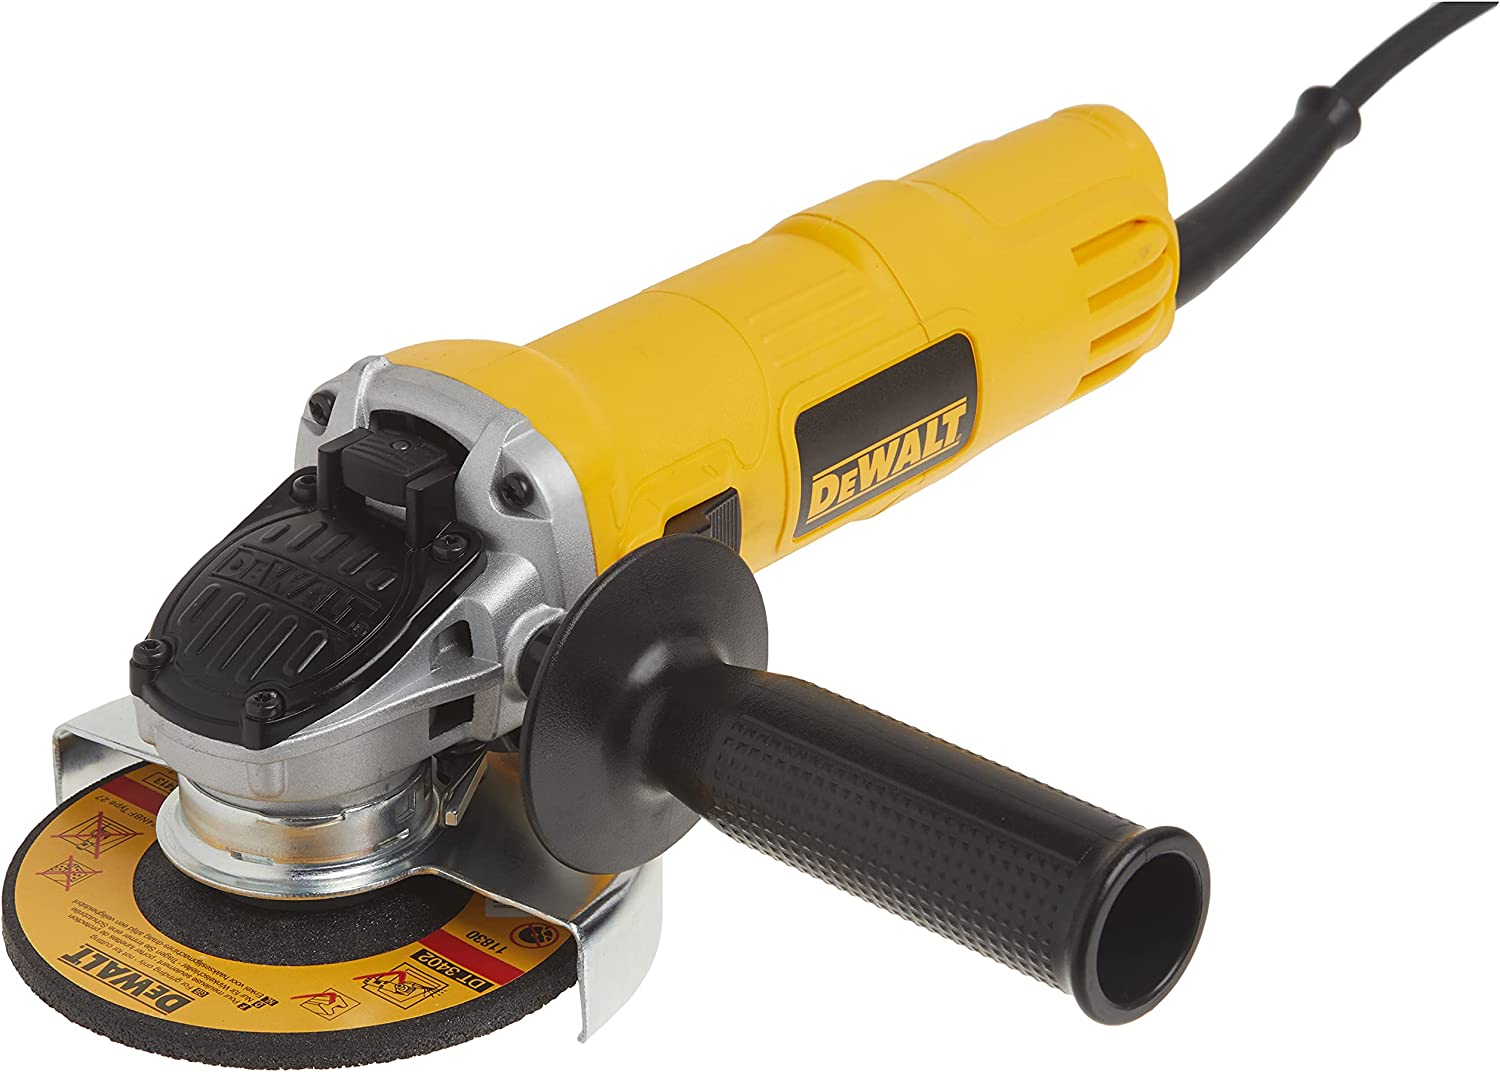 DEWALT Angle Grinder One-Touch Guard Bargain sale Y 2 4-1 DWE4011 -Inch At the price of surprise